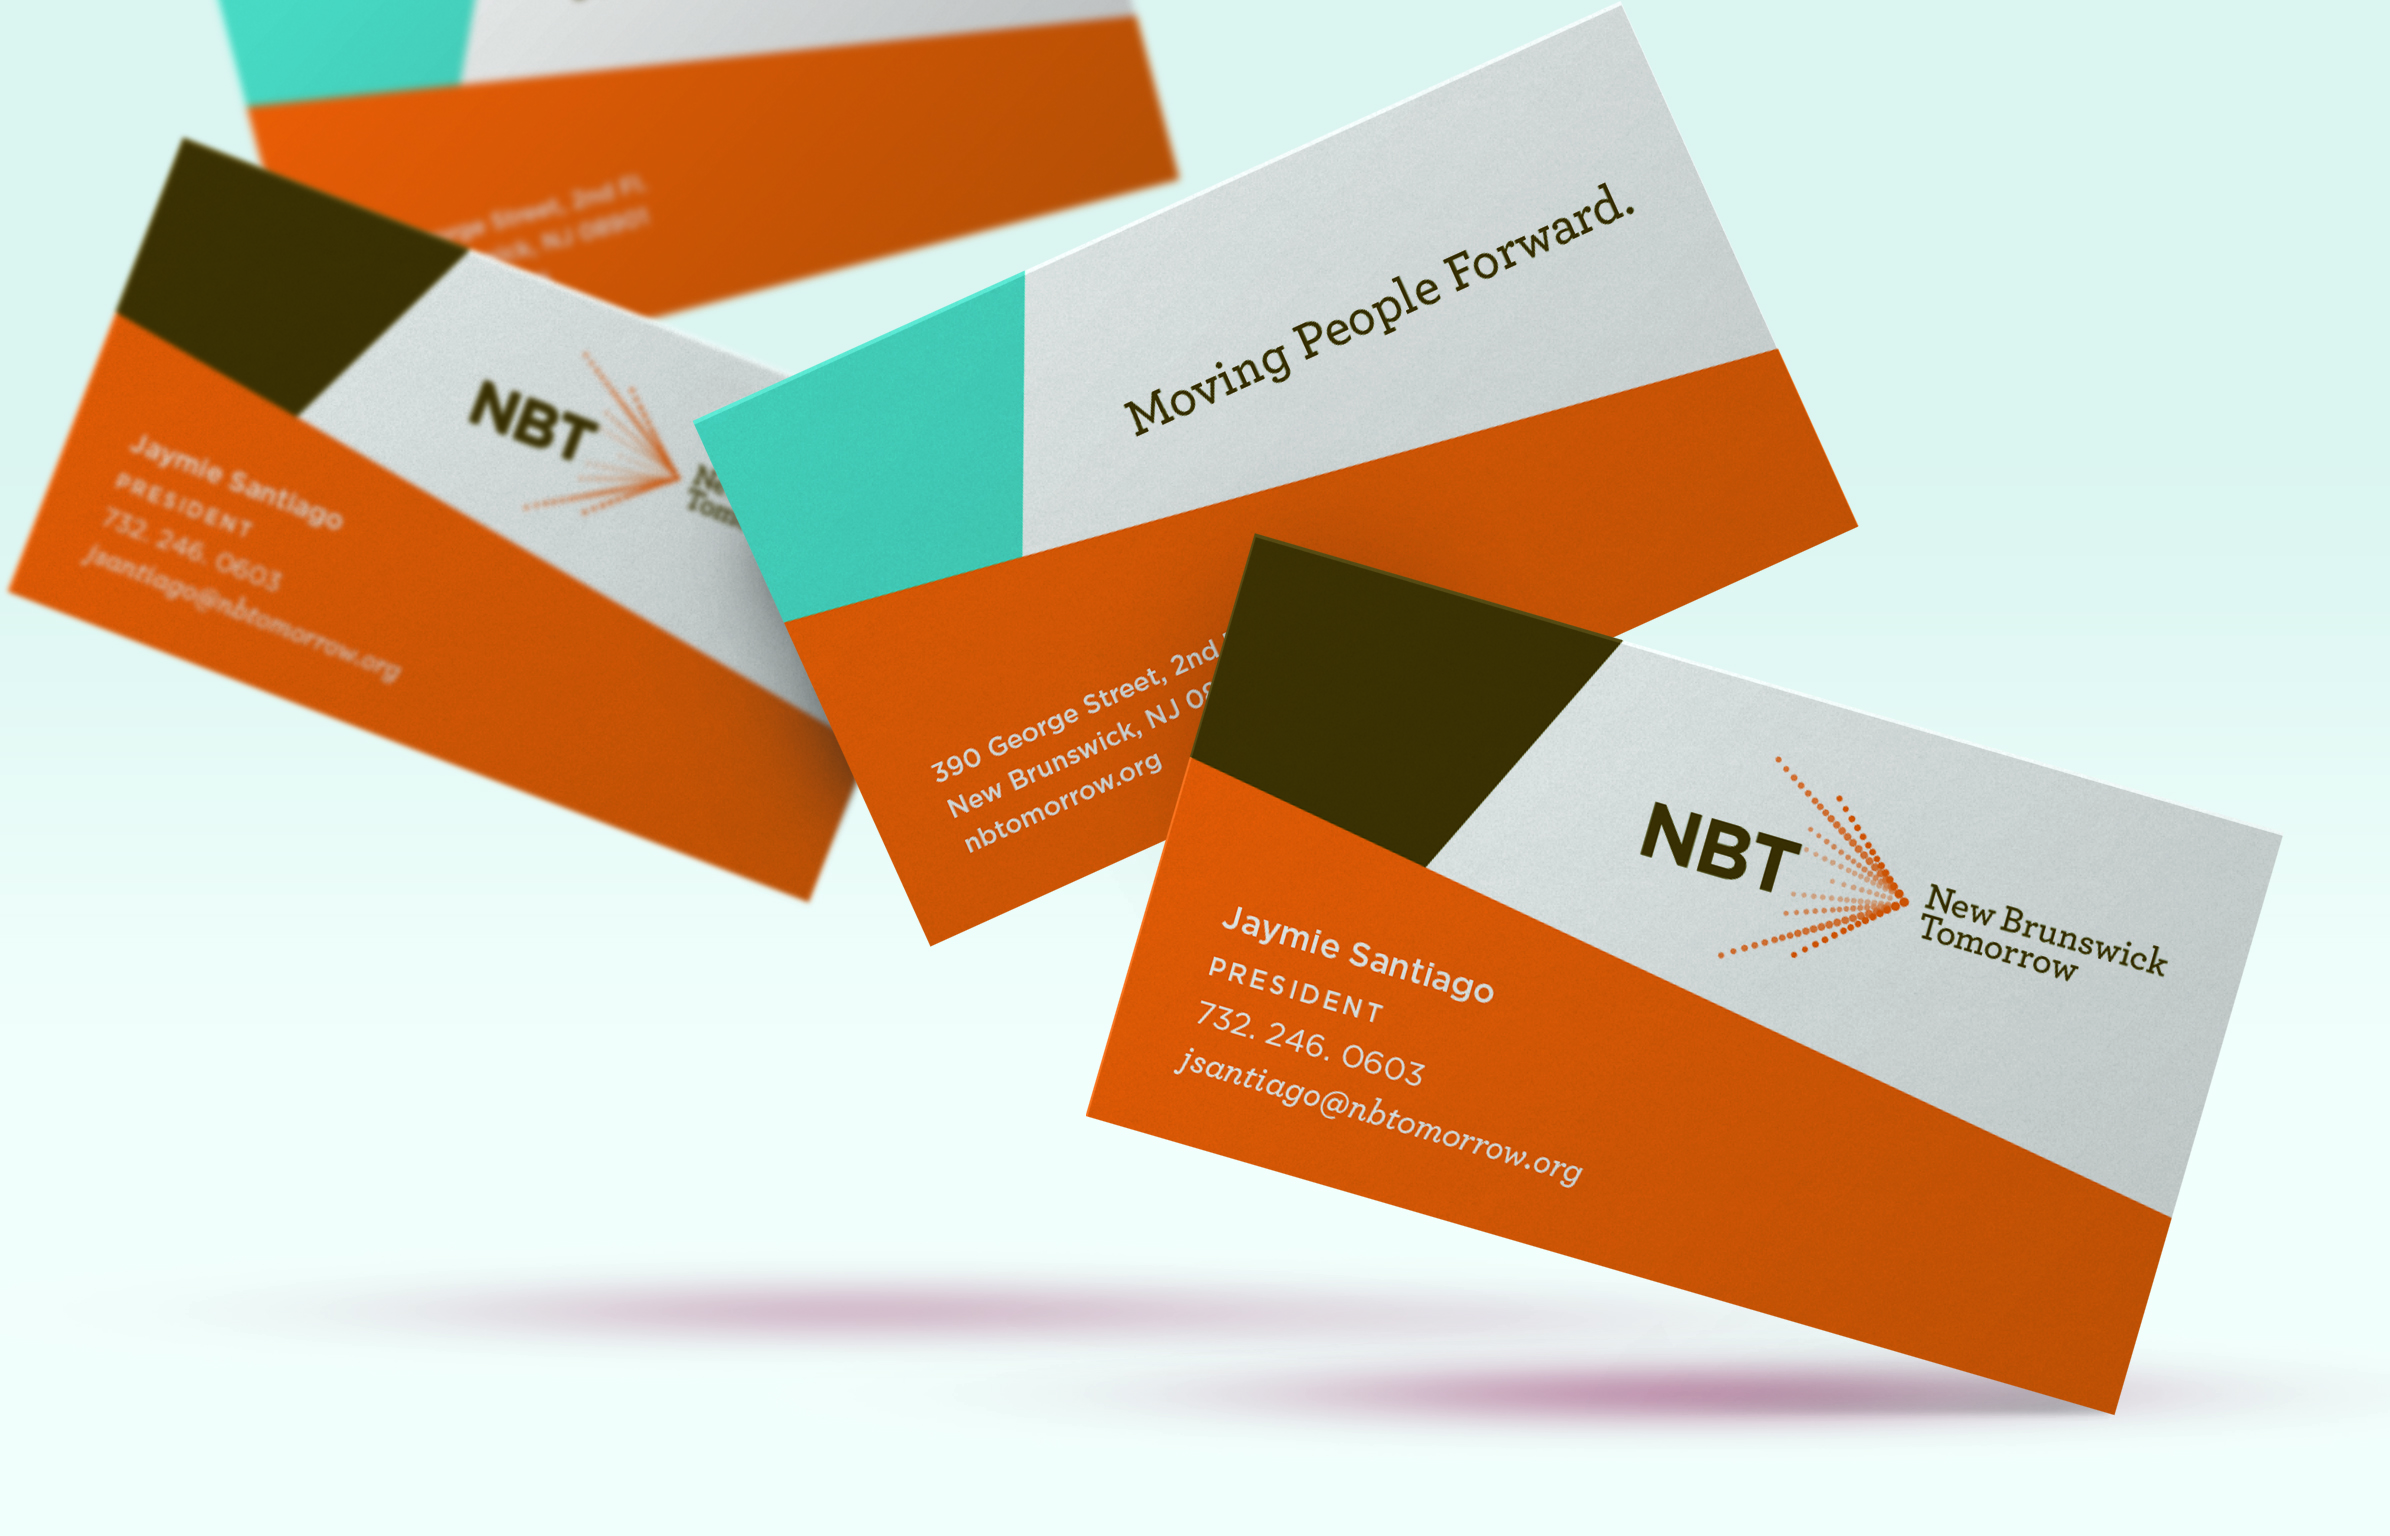 NBT business cards fanned out